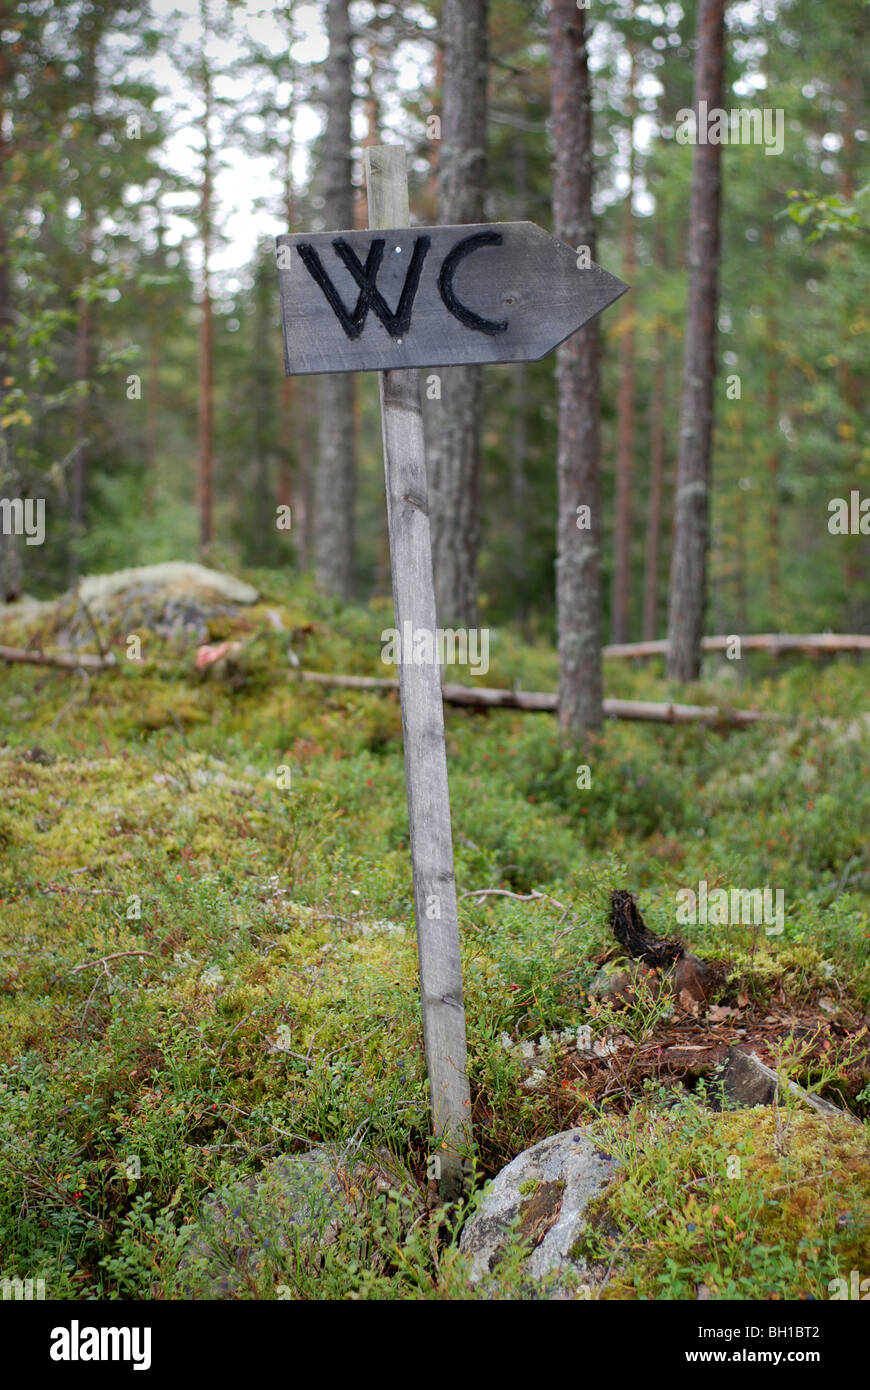 WC sign in forest - Stock Image